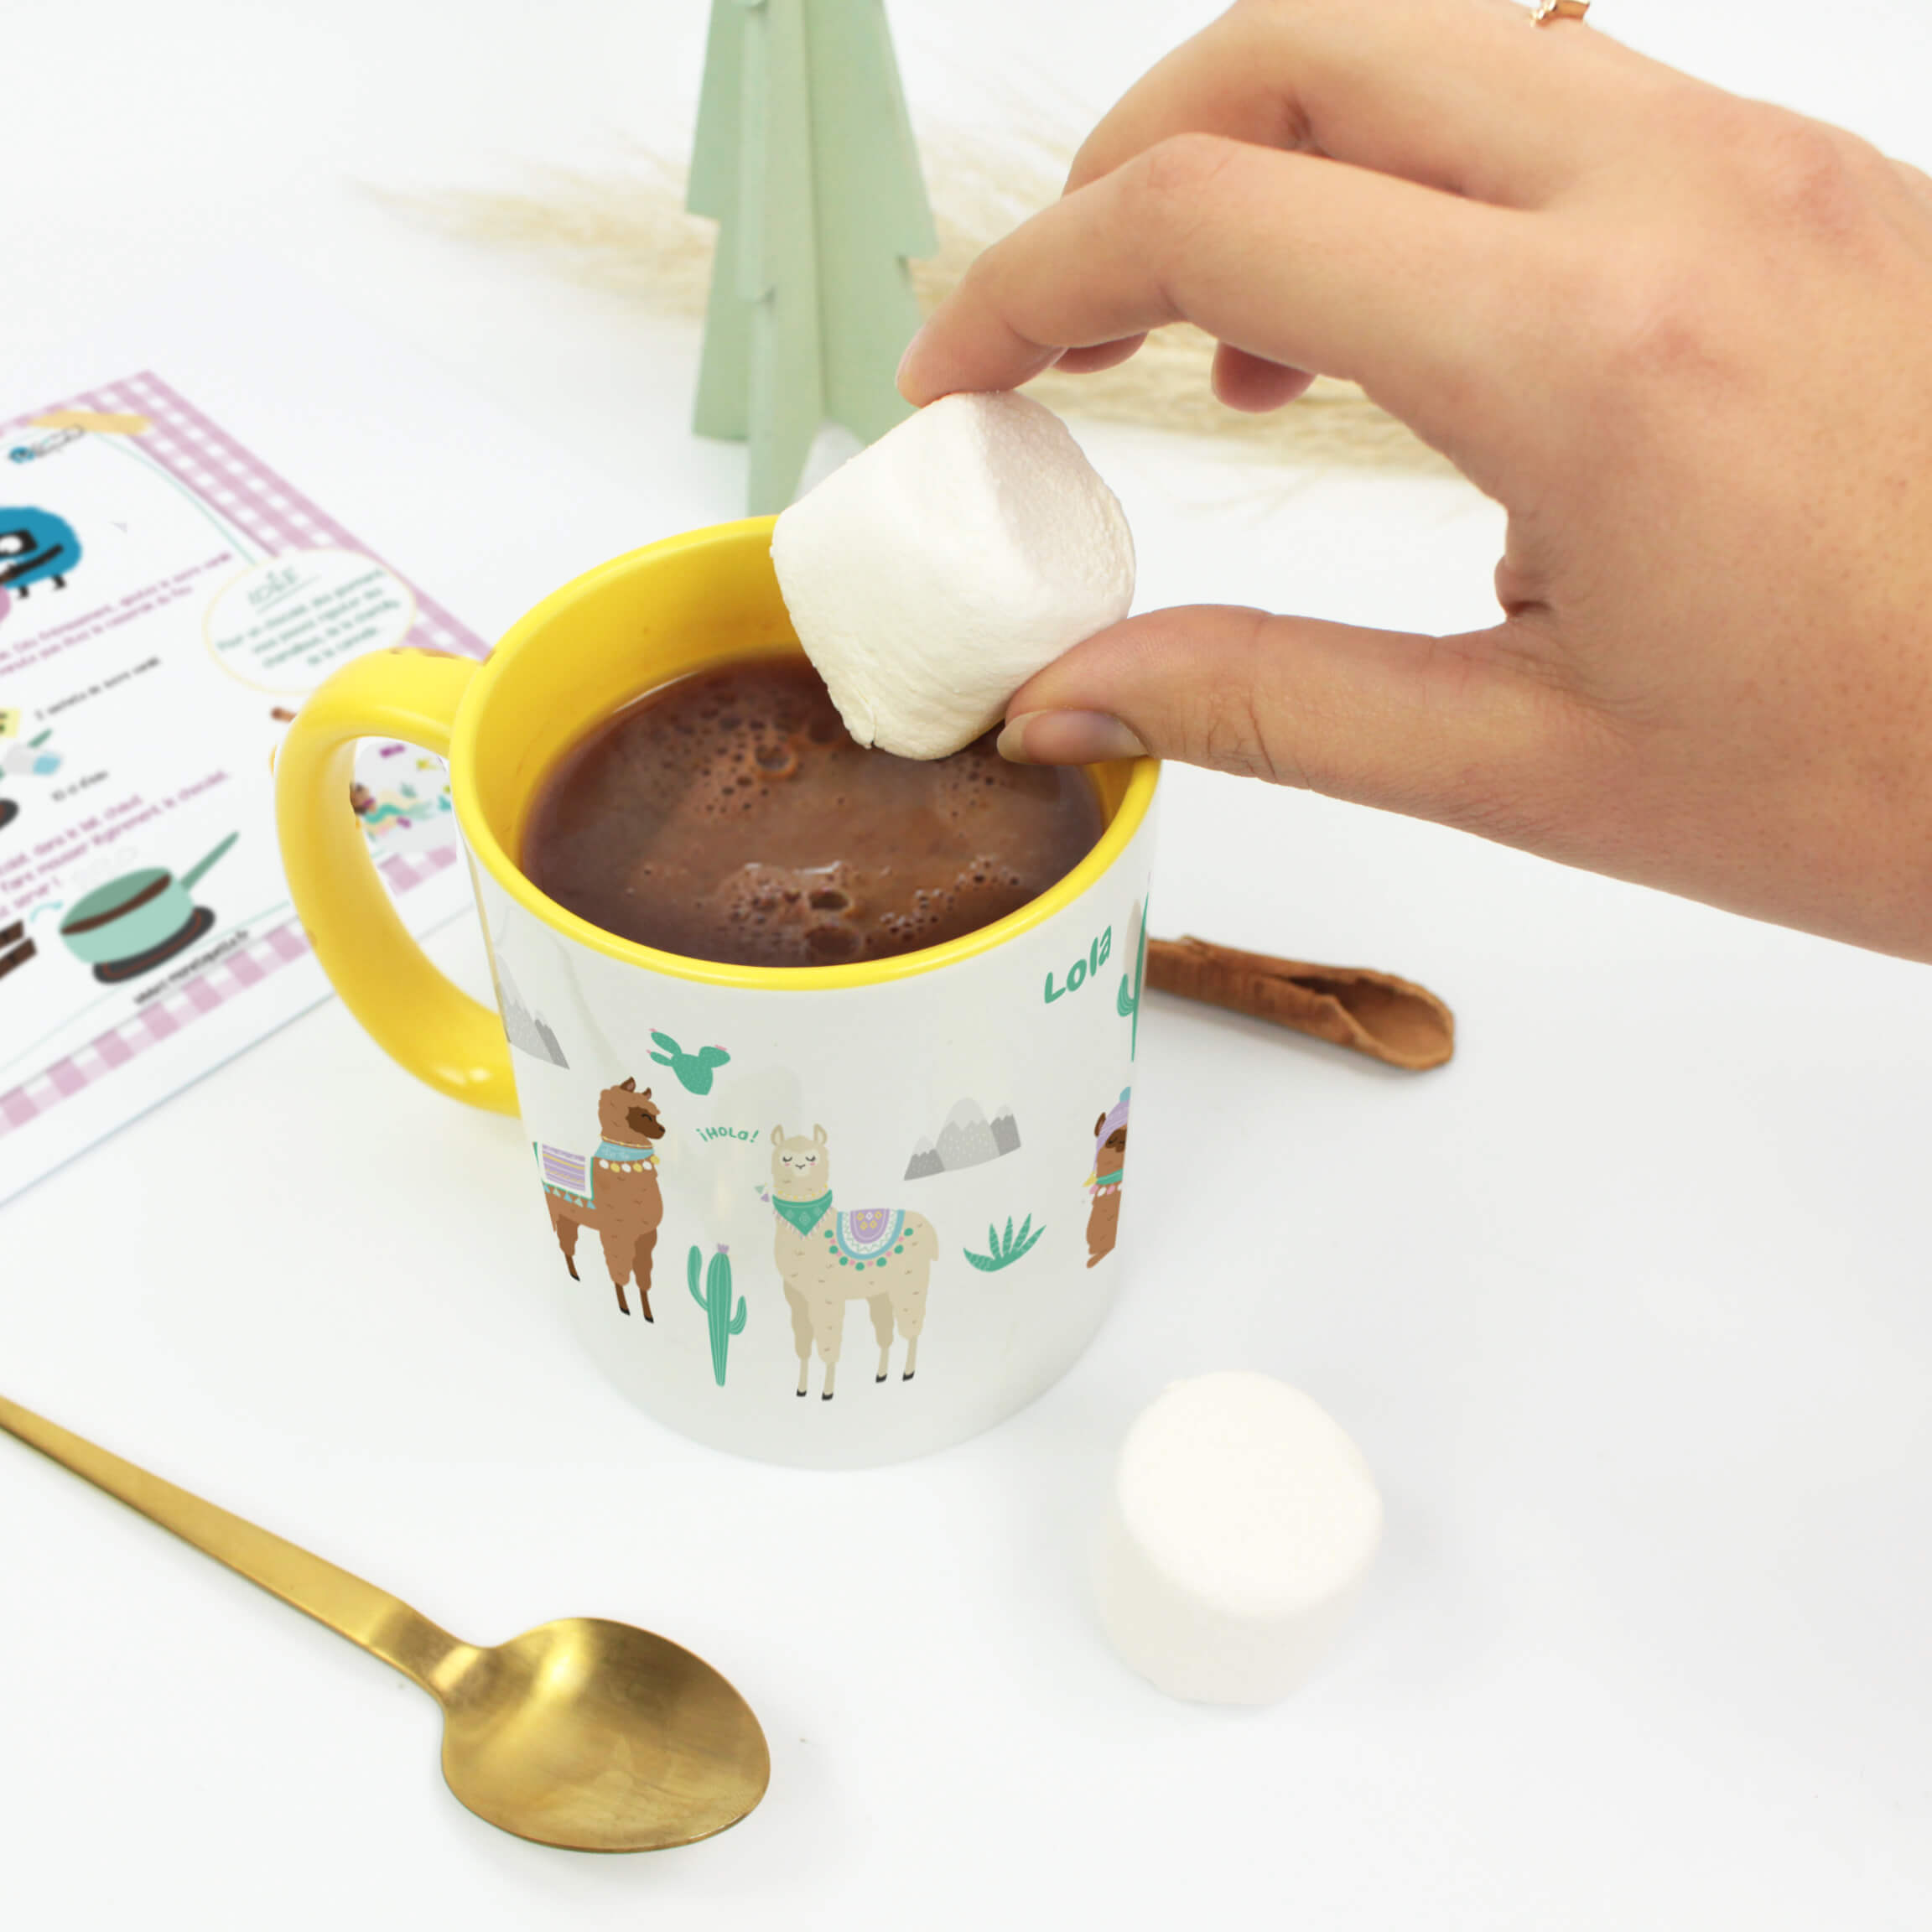 Take a delicious break with our traditional homemade hot chocolate